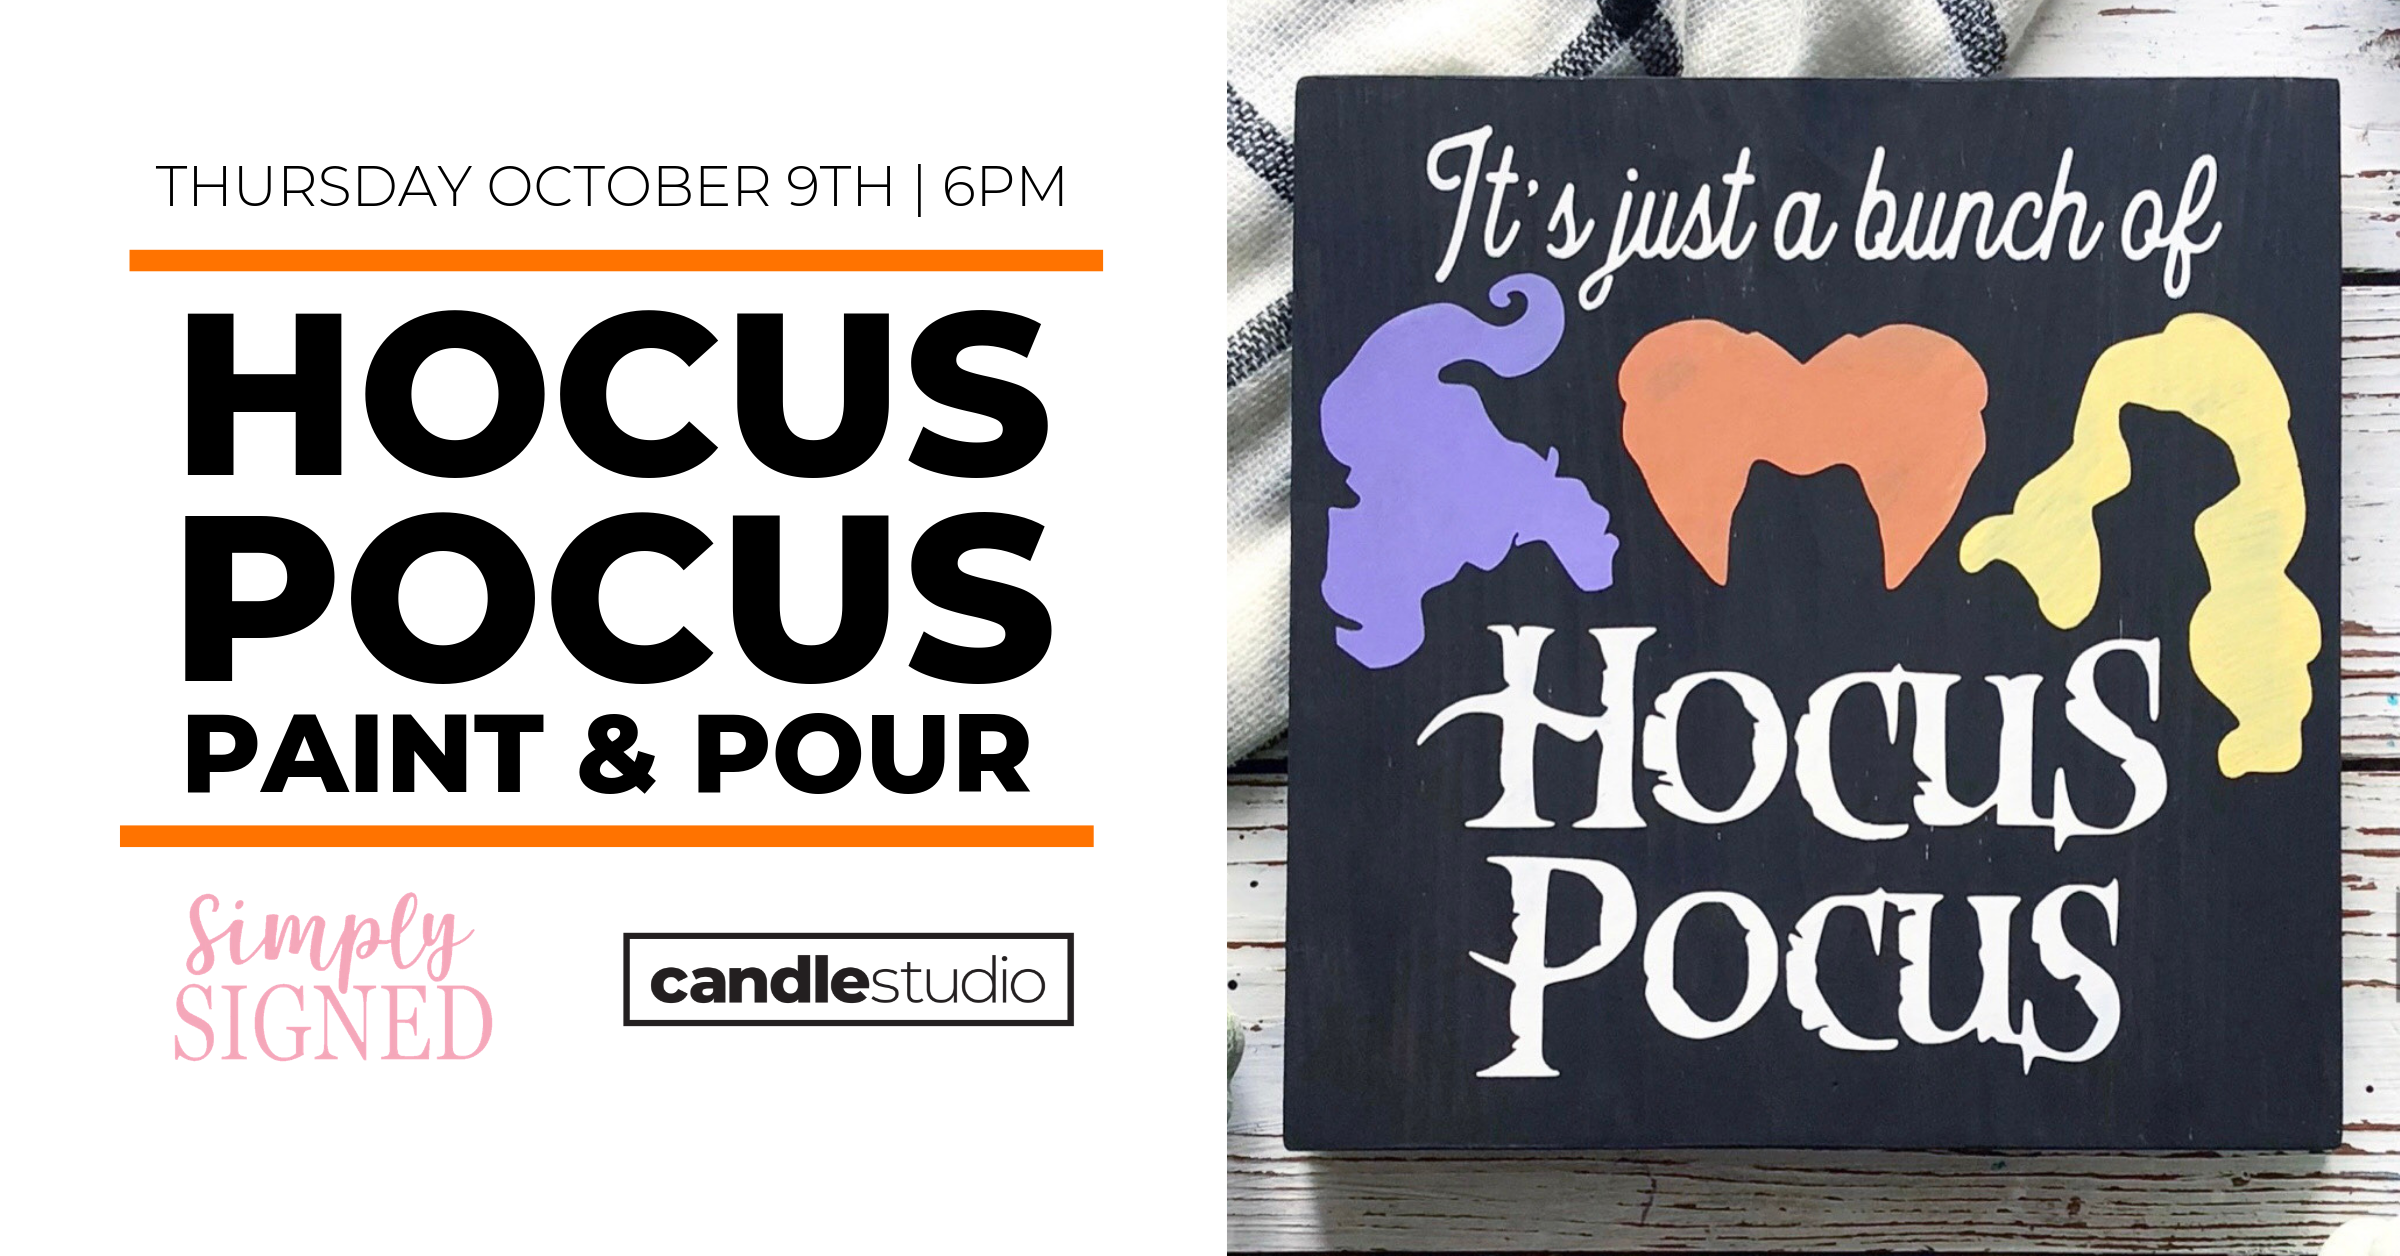 HOCUS POCUS PAINT AND POUR AT THE CANDLE STUDIO